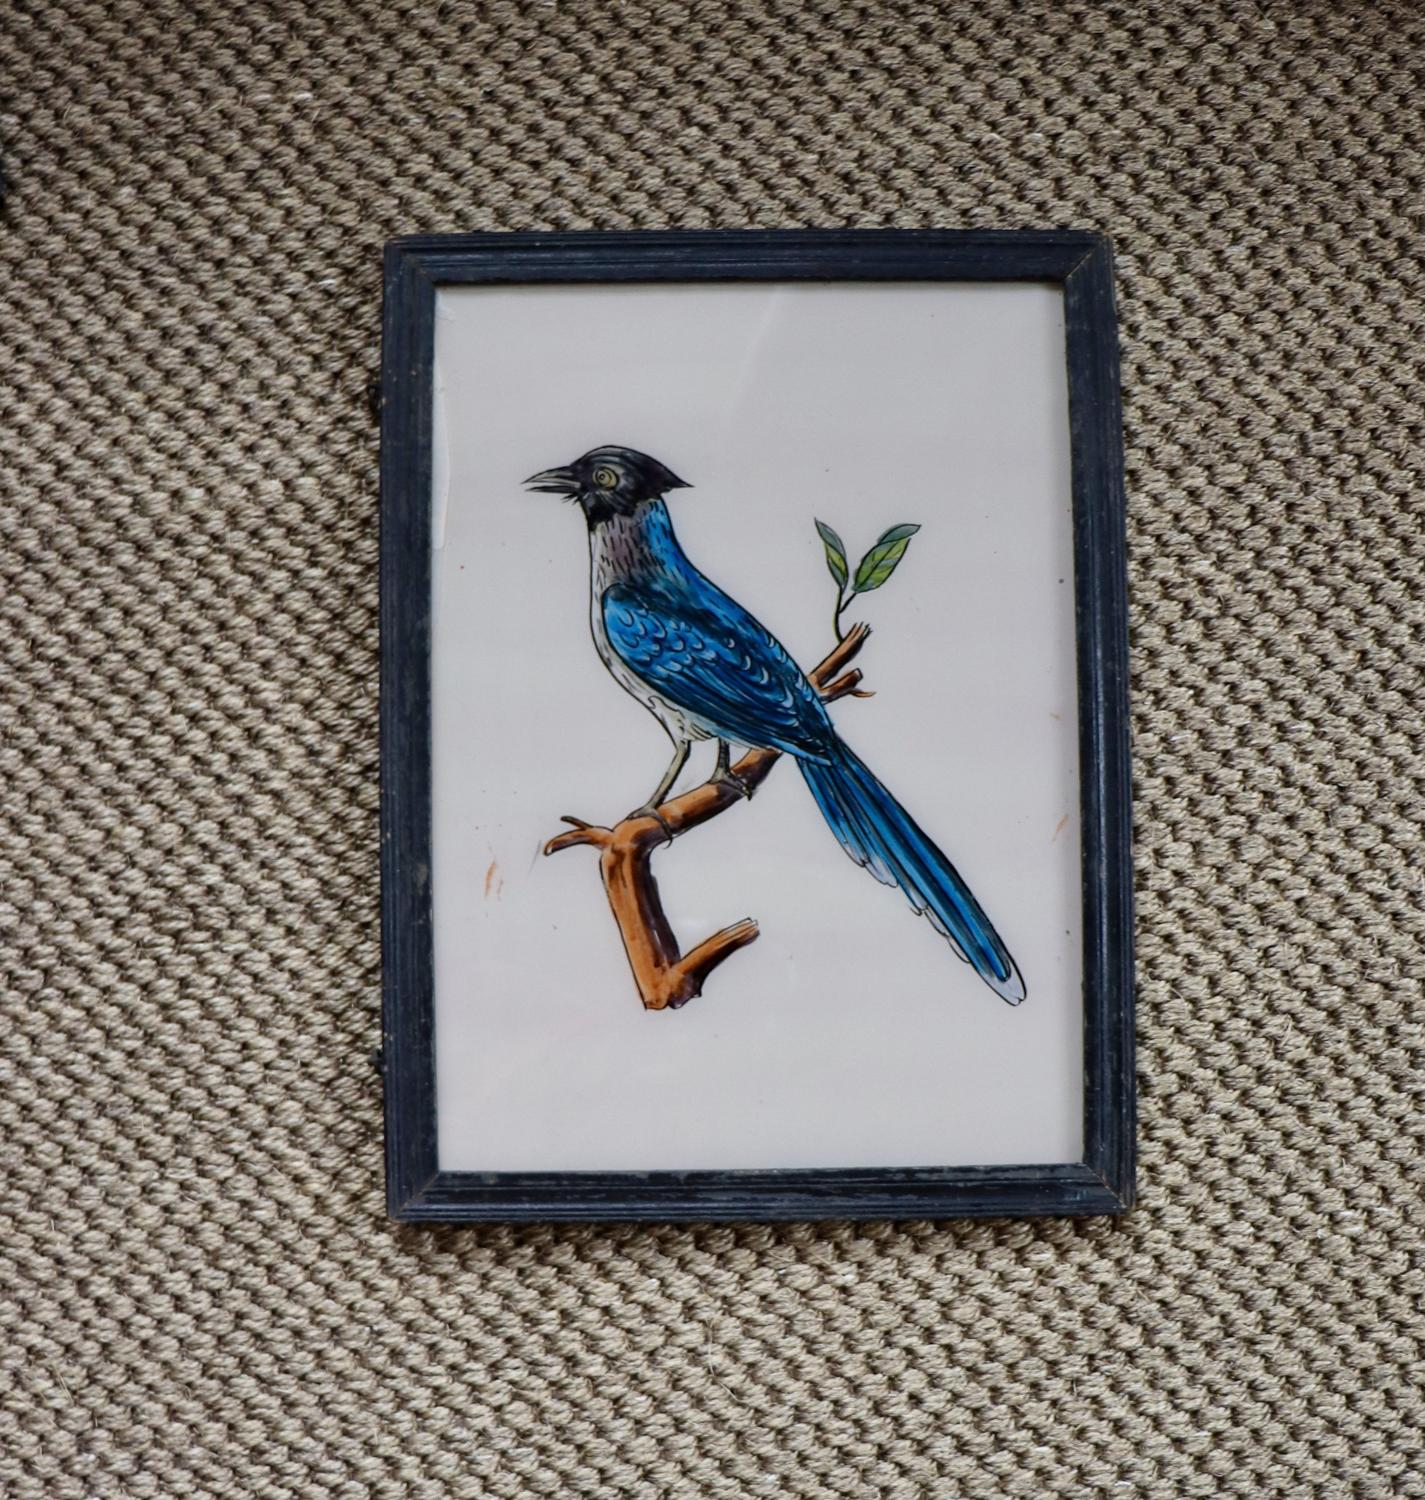 Reverse glass painted Indian picture of bird